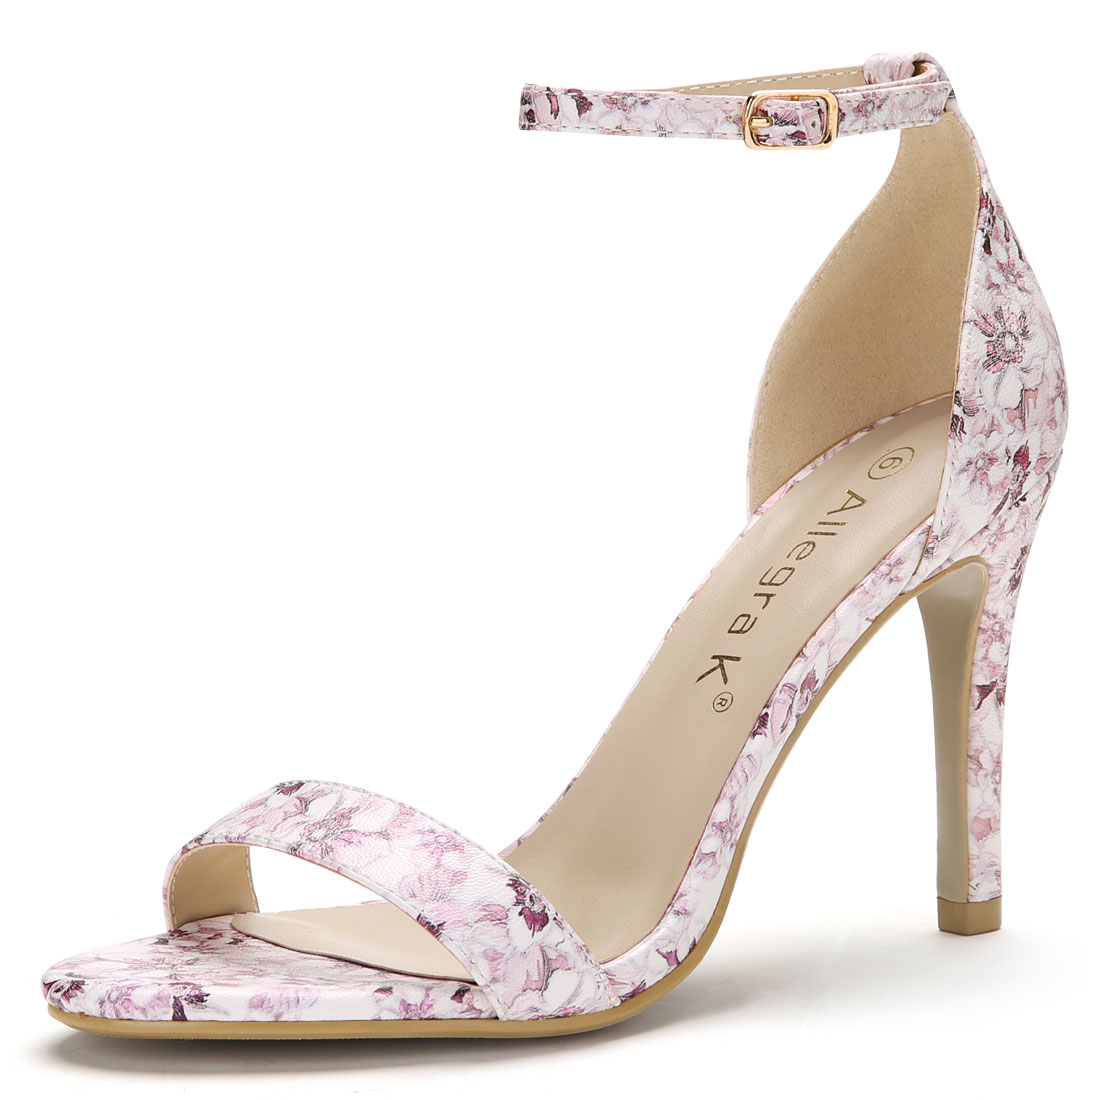 Women Floral Prints Stiletto Heel Ankle Strap Sandals Light Purple US 5